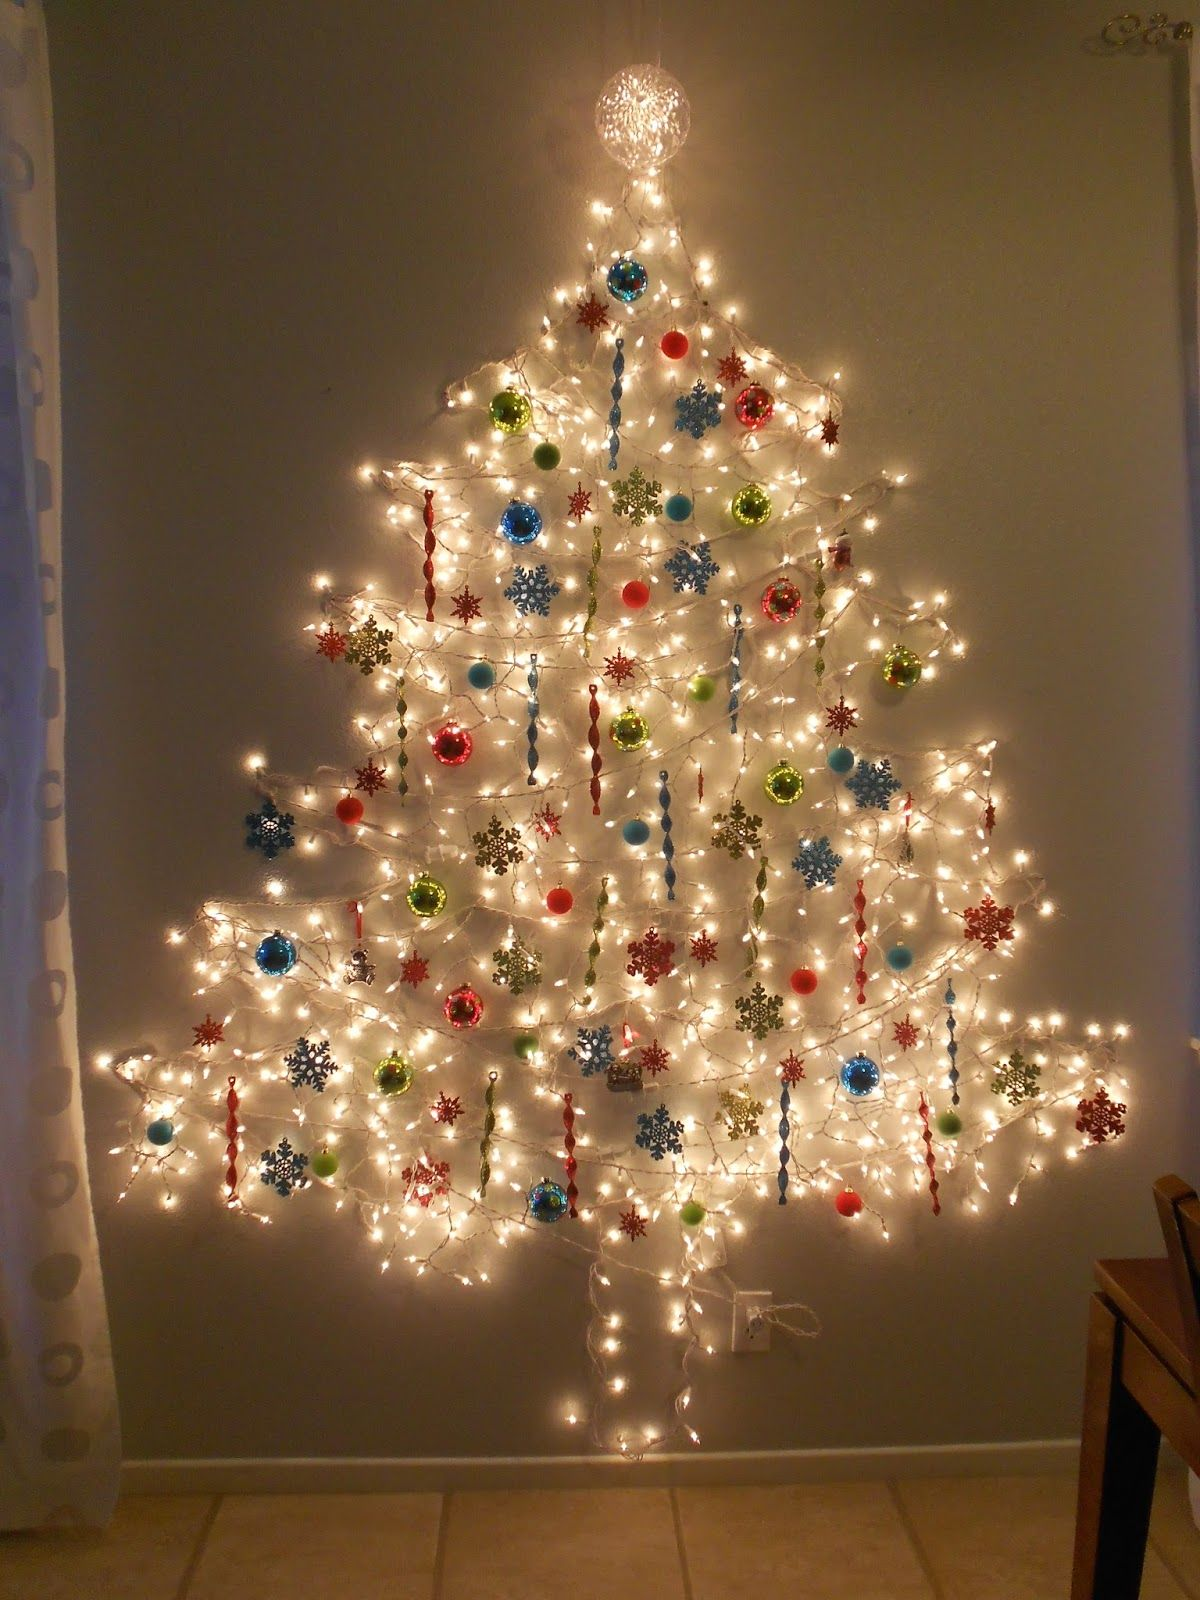 how to recycle wall christmas trees - Christmas Tree With Lights And Decorations